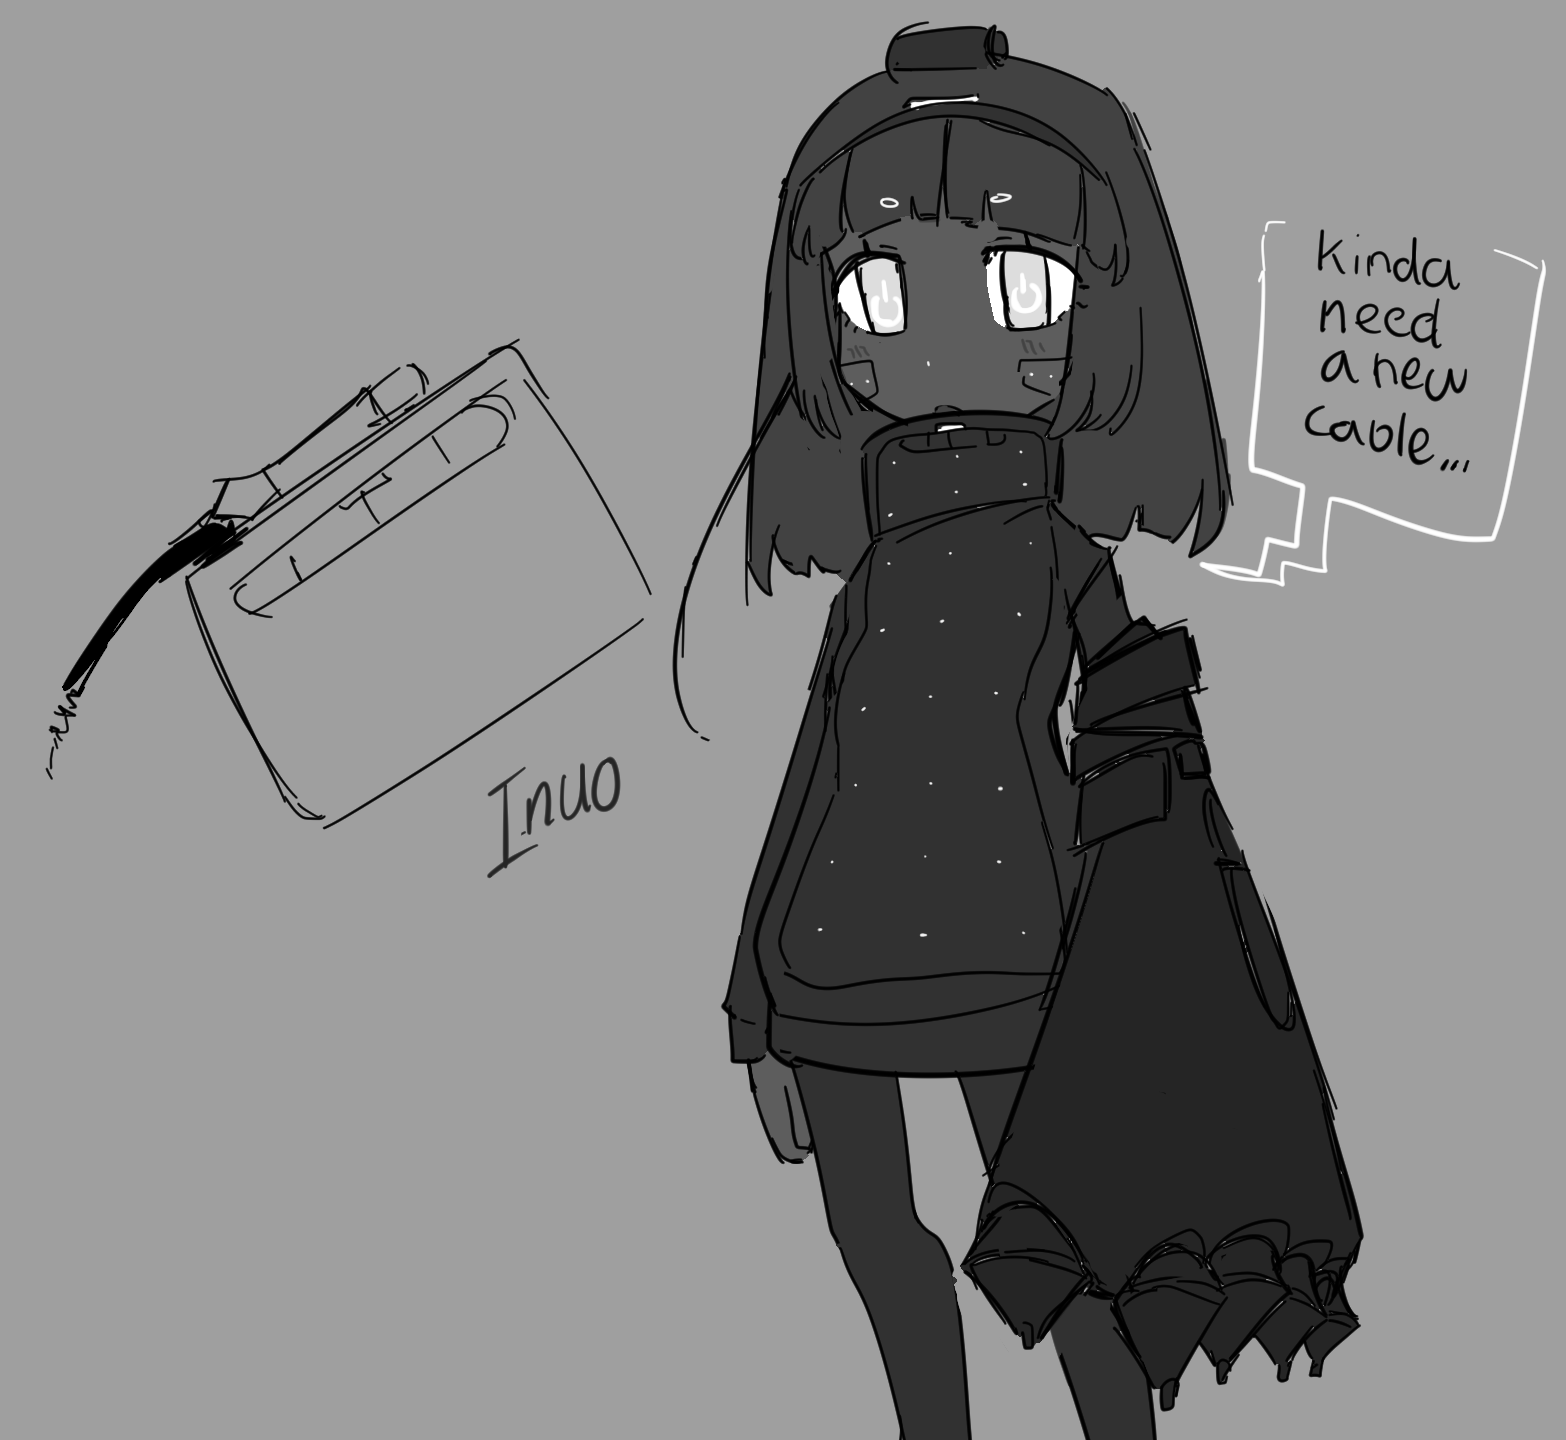 [Character Design] Inuo